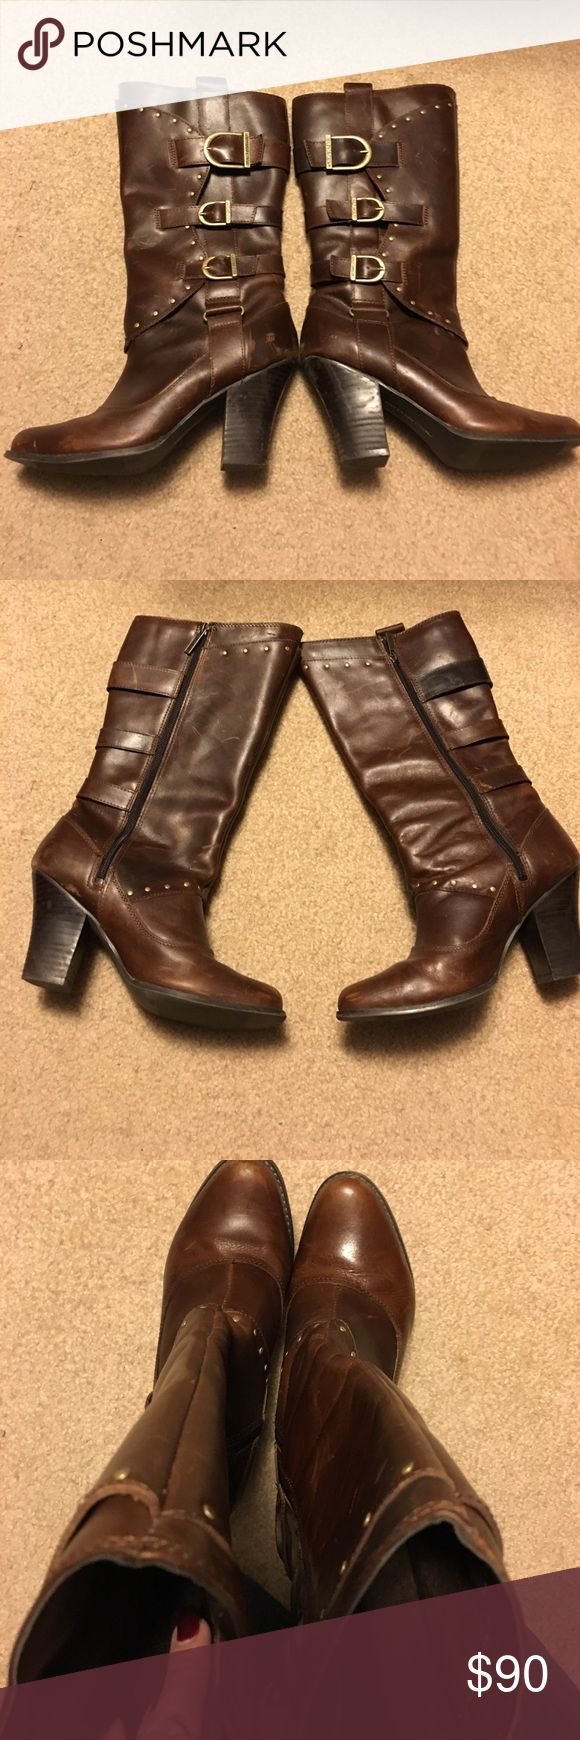 """Harley Davidson Boots. Size is 8.5. Brown leather and broken in to perfection! Size is 8.5. Brass rivets and buckles. Calf size approx. 14"""". Heel height 3.5"""". Size zips. Loved to perfection!💋 Harley-Davidson Shoes Heeled Boots"""